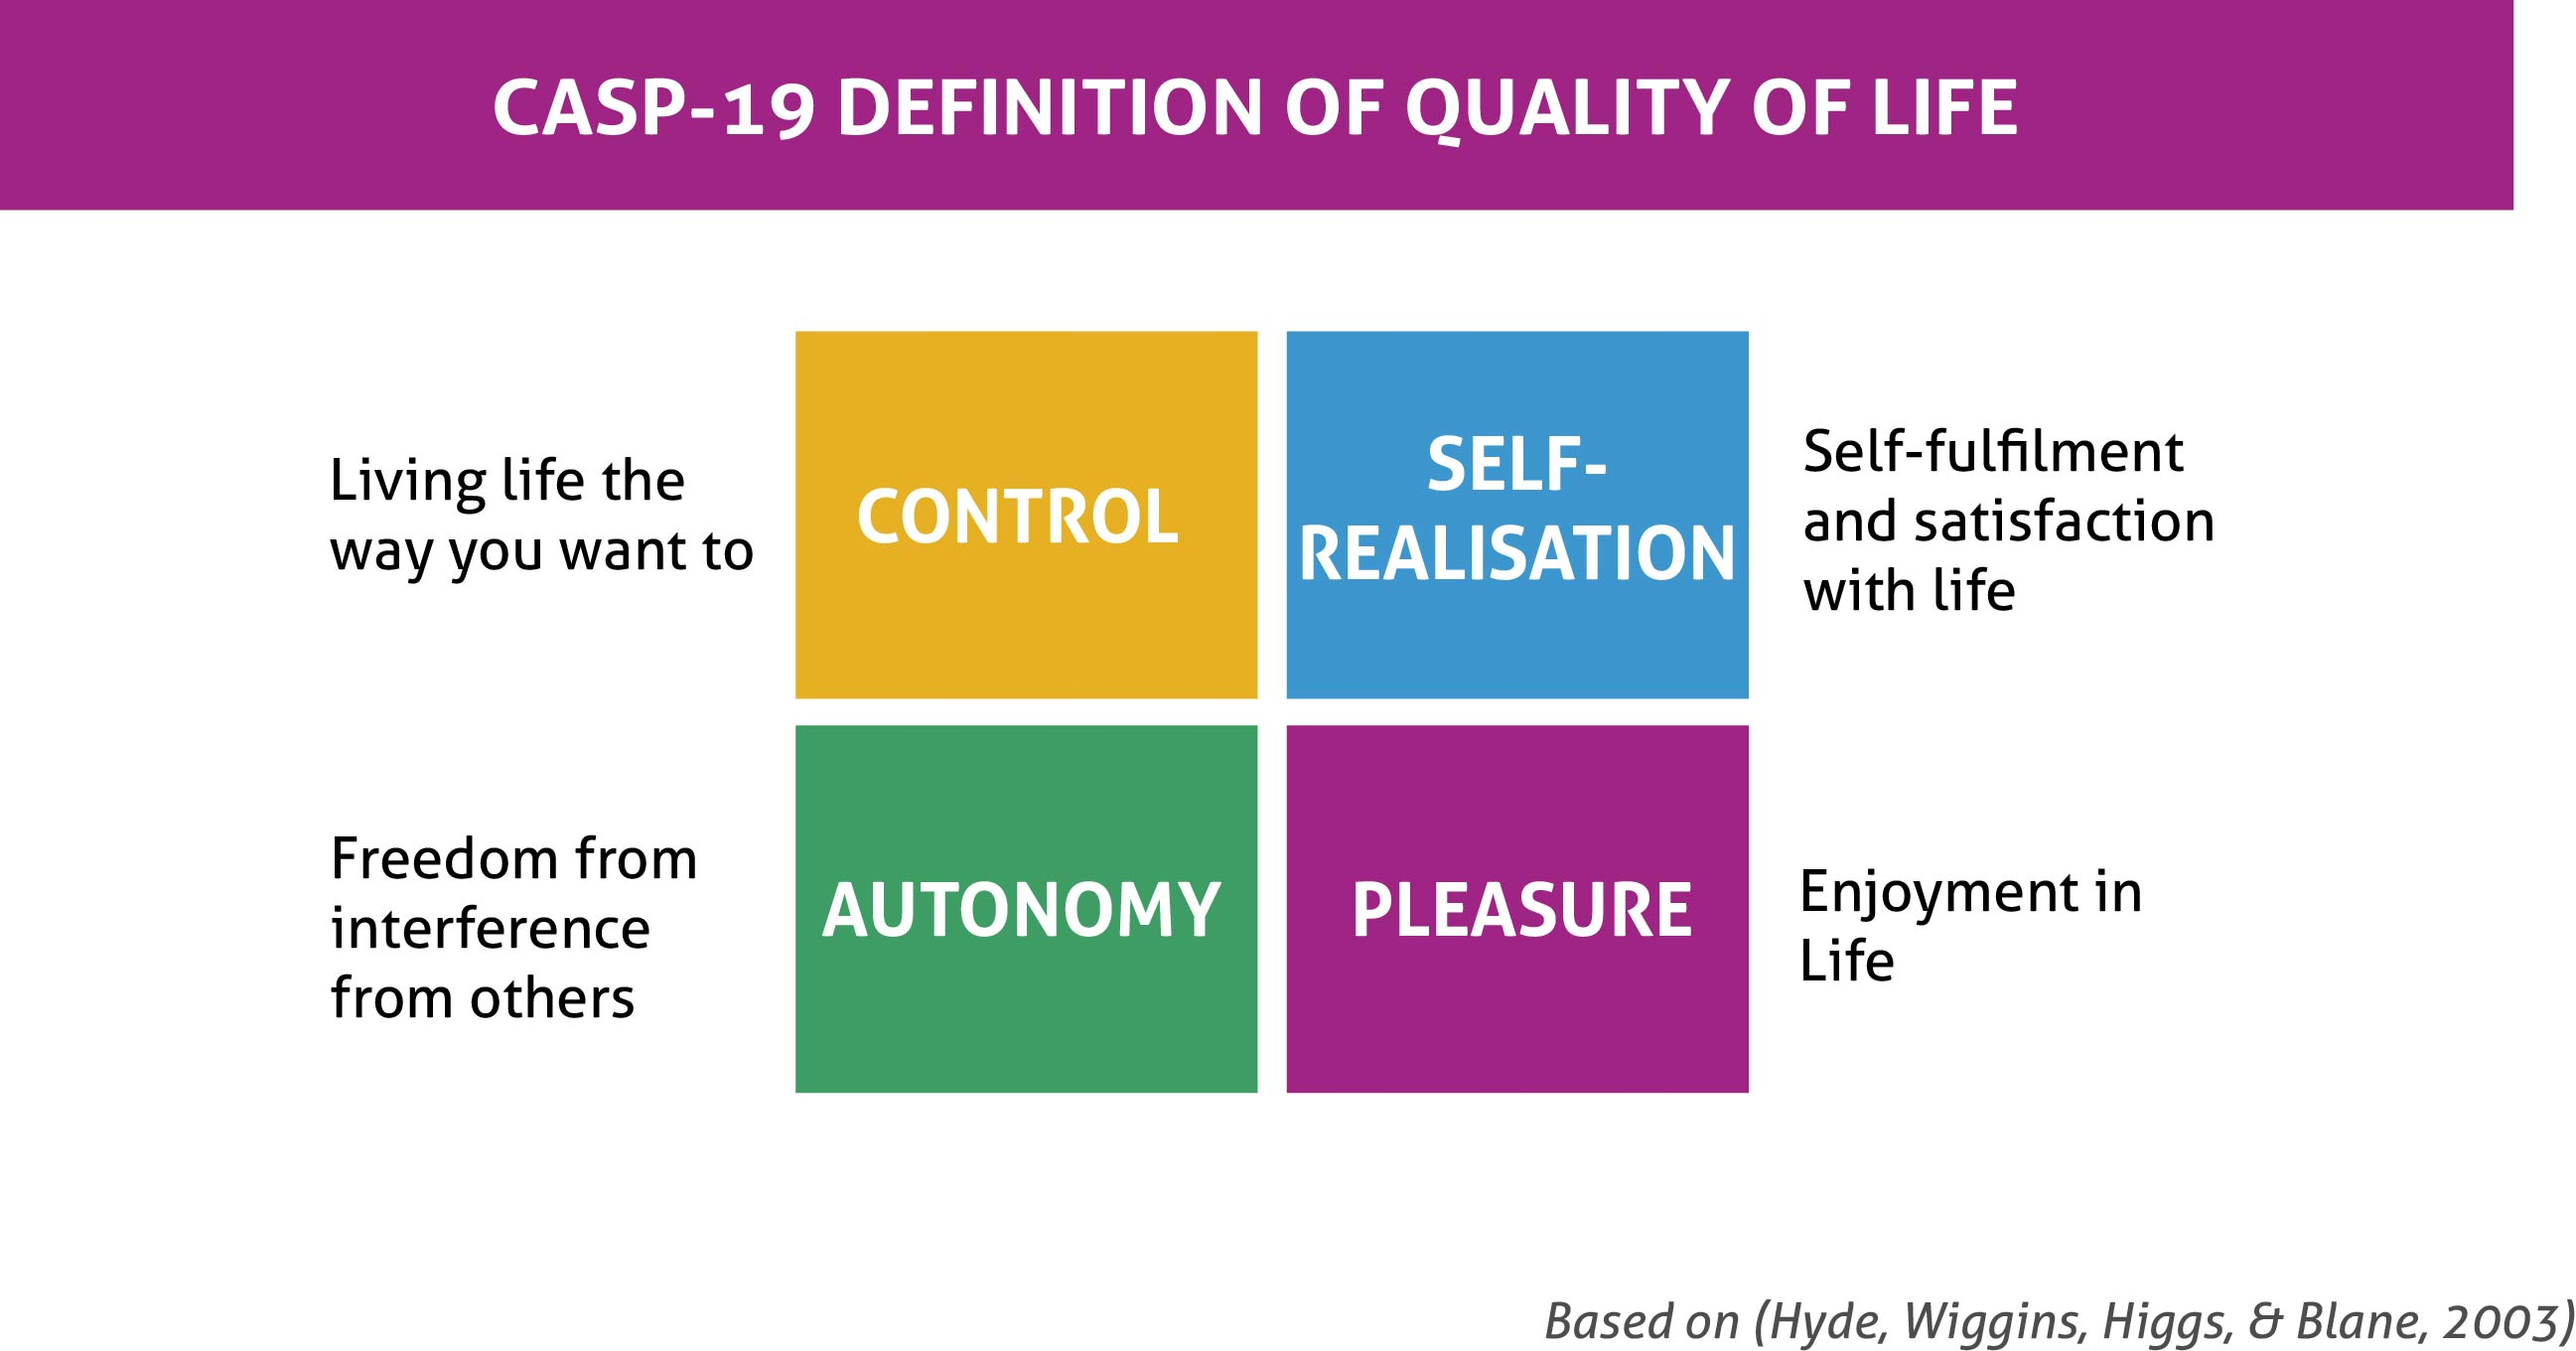 exploring quality of life - strategies for successful ageing